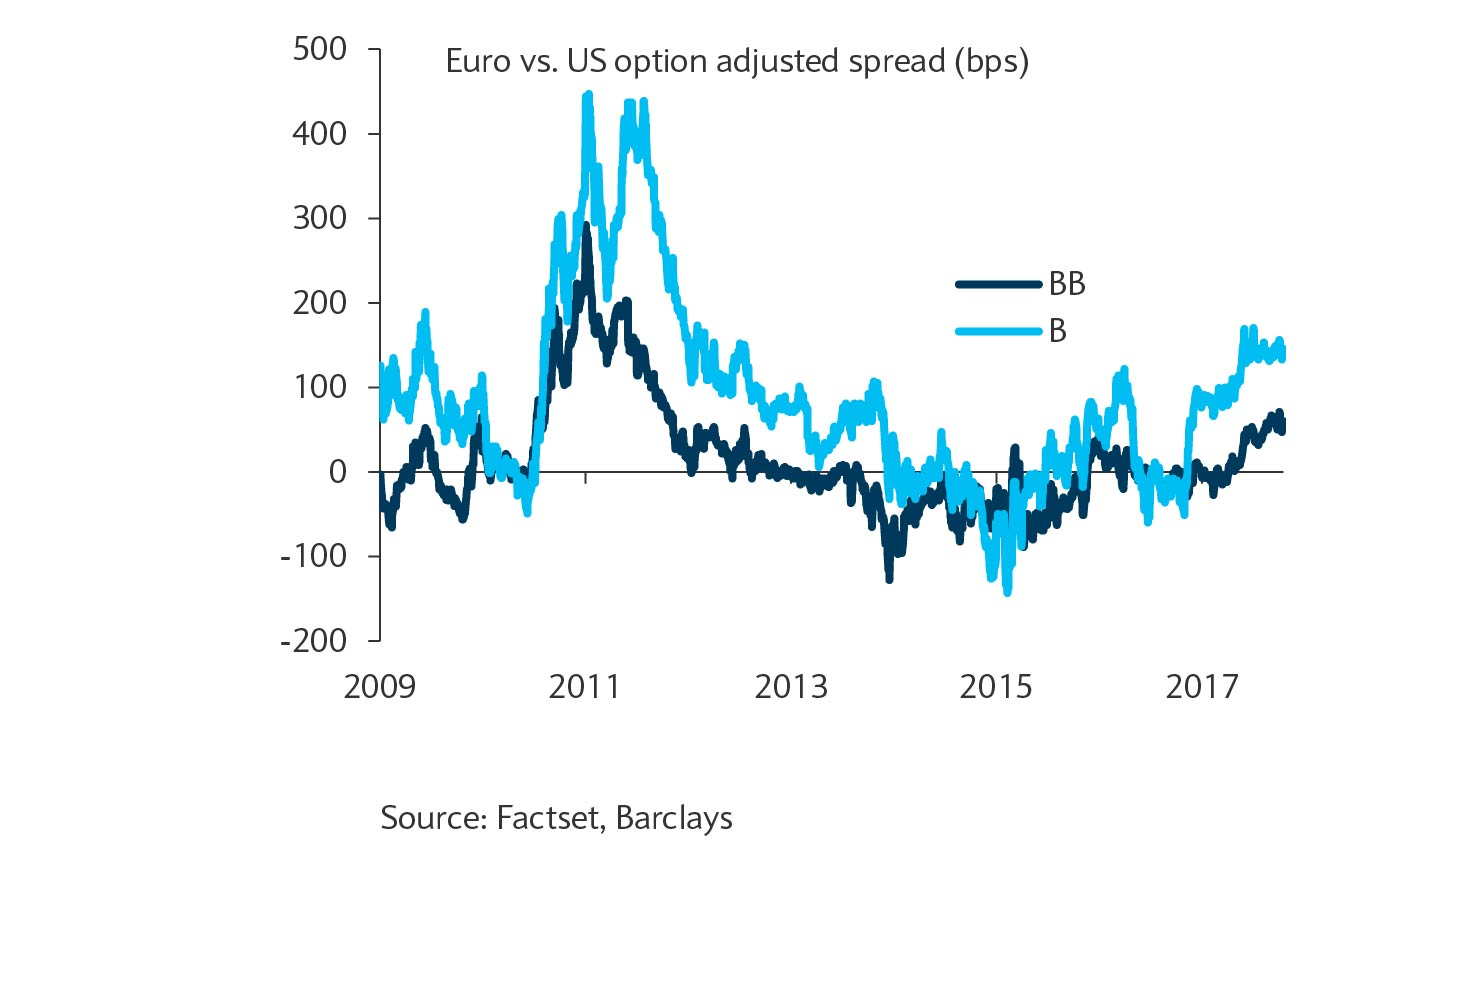 Euro HY at a spread premium to US HY